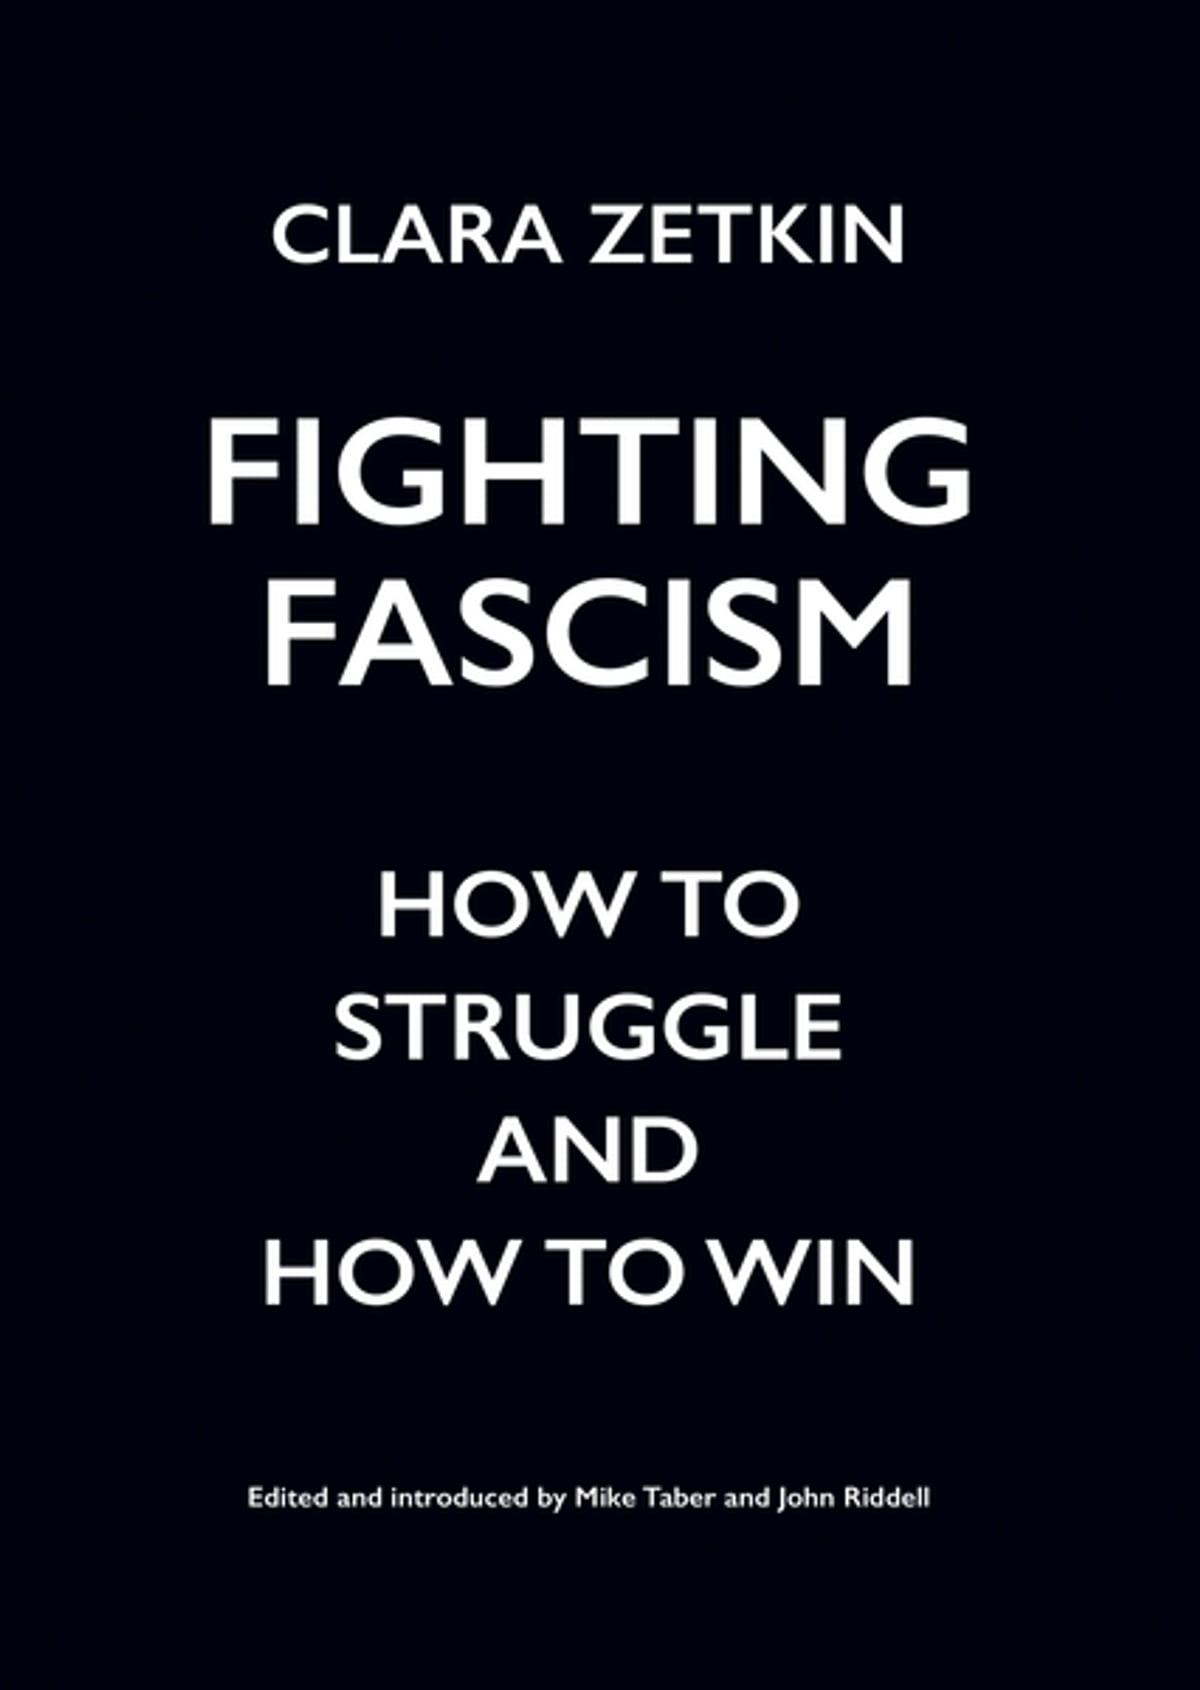 Fighting Fascism Ebook By Clara Zetkin 9781608468799 Rakuten Kobo